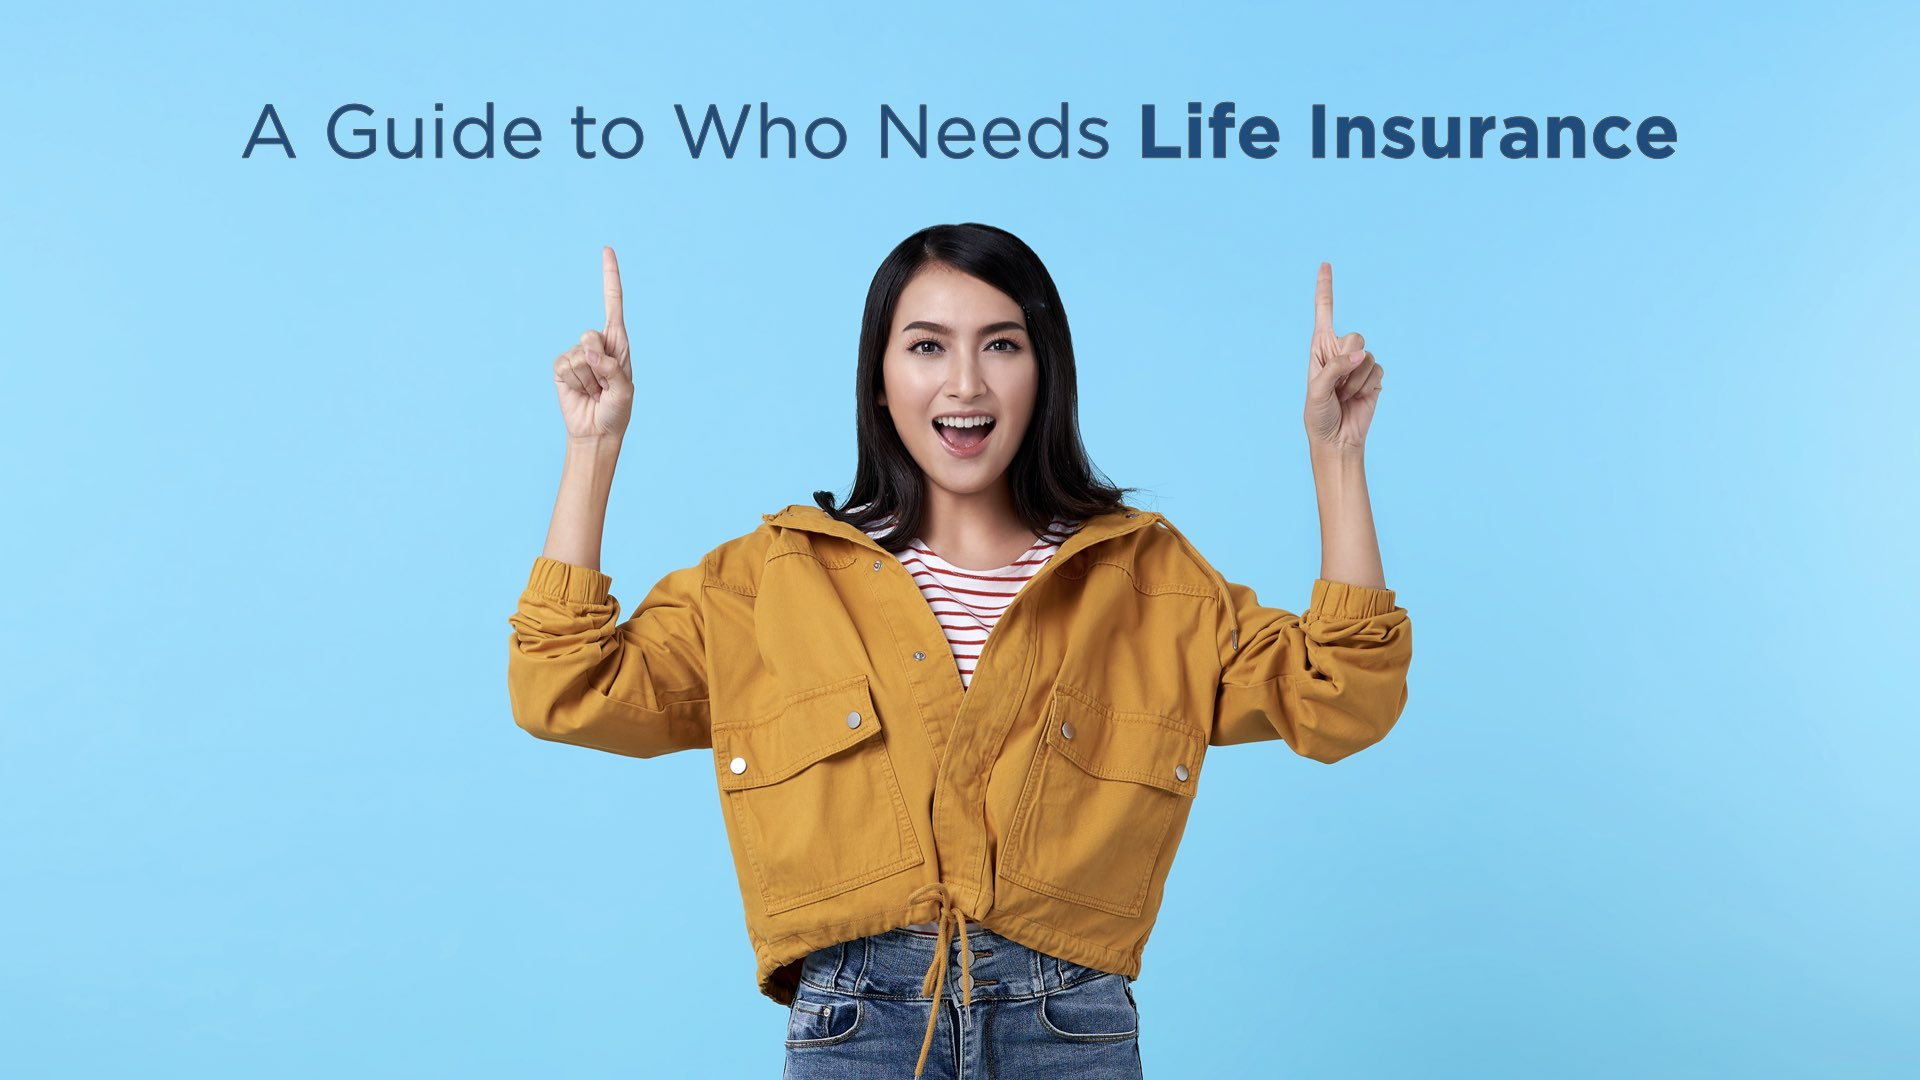 How to Know If You Need Life Insurance